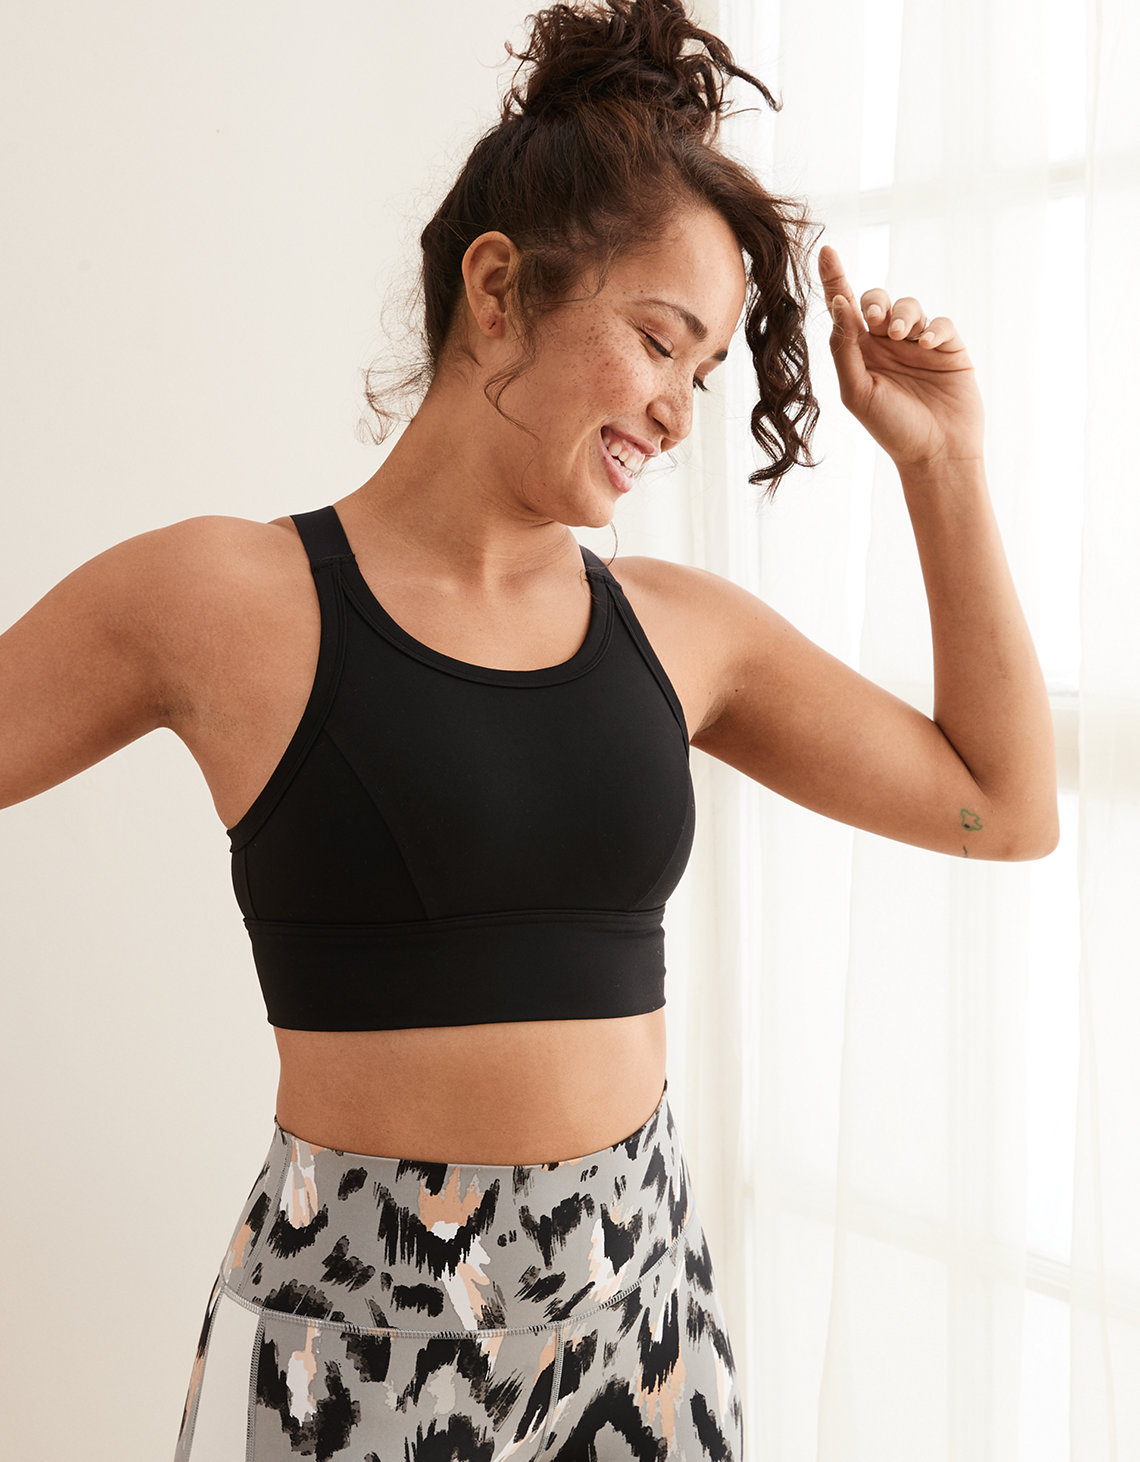 e3bea85c646 Aerie Play High Neck Sports Bra. Placeholder image. Product Image